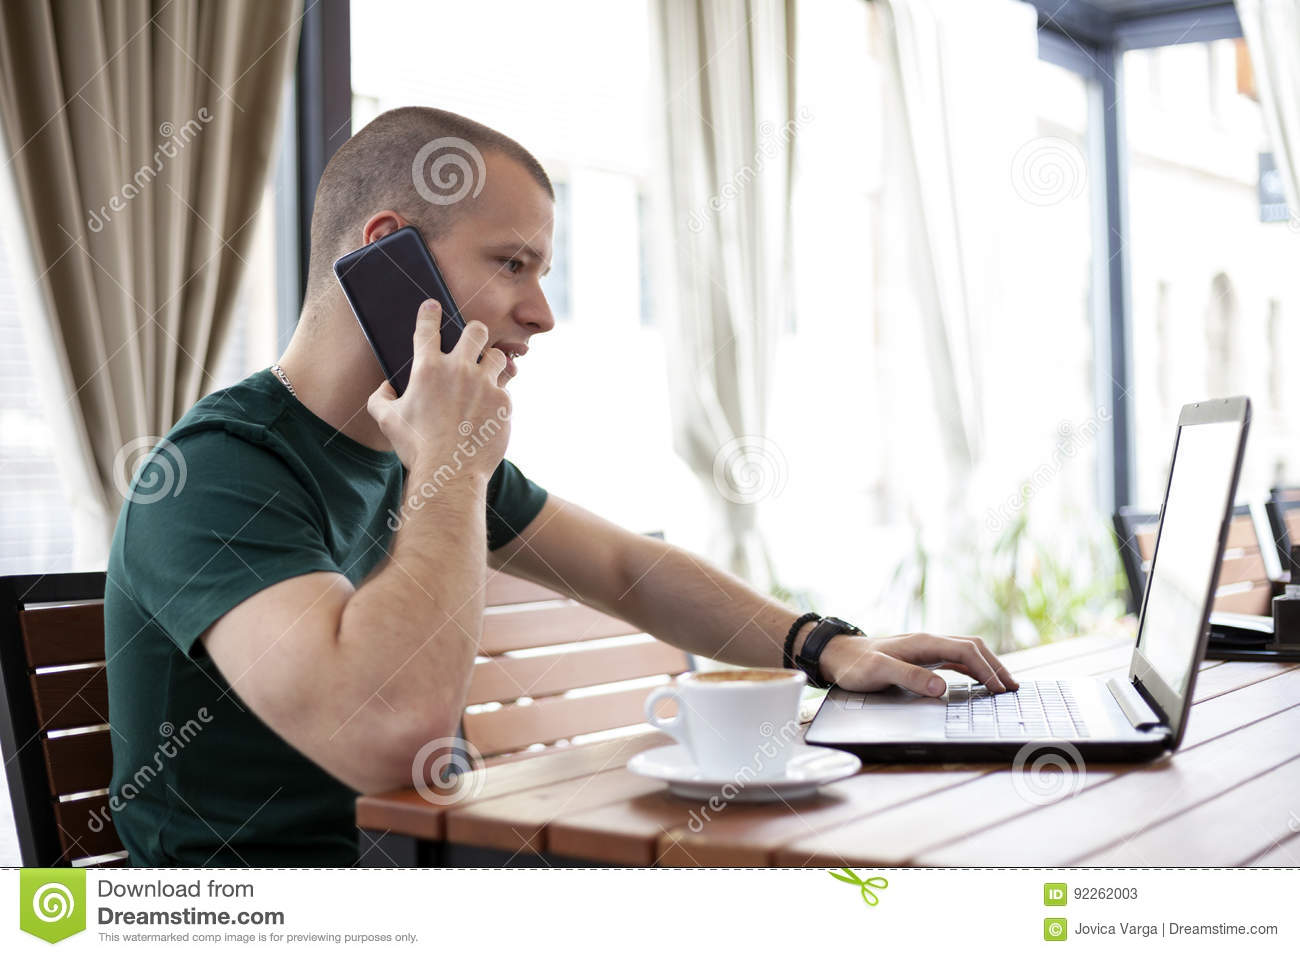 f93a6ebde98b Student Telephone And Surf The Internet In Cafe Stock Image - Image ...